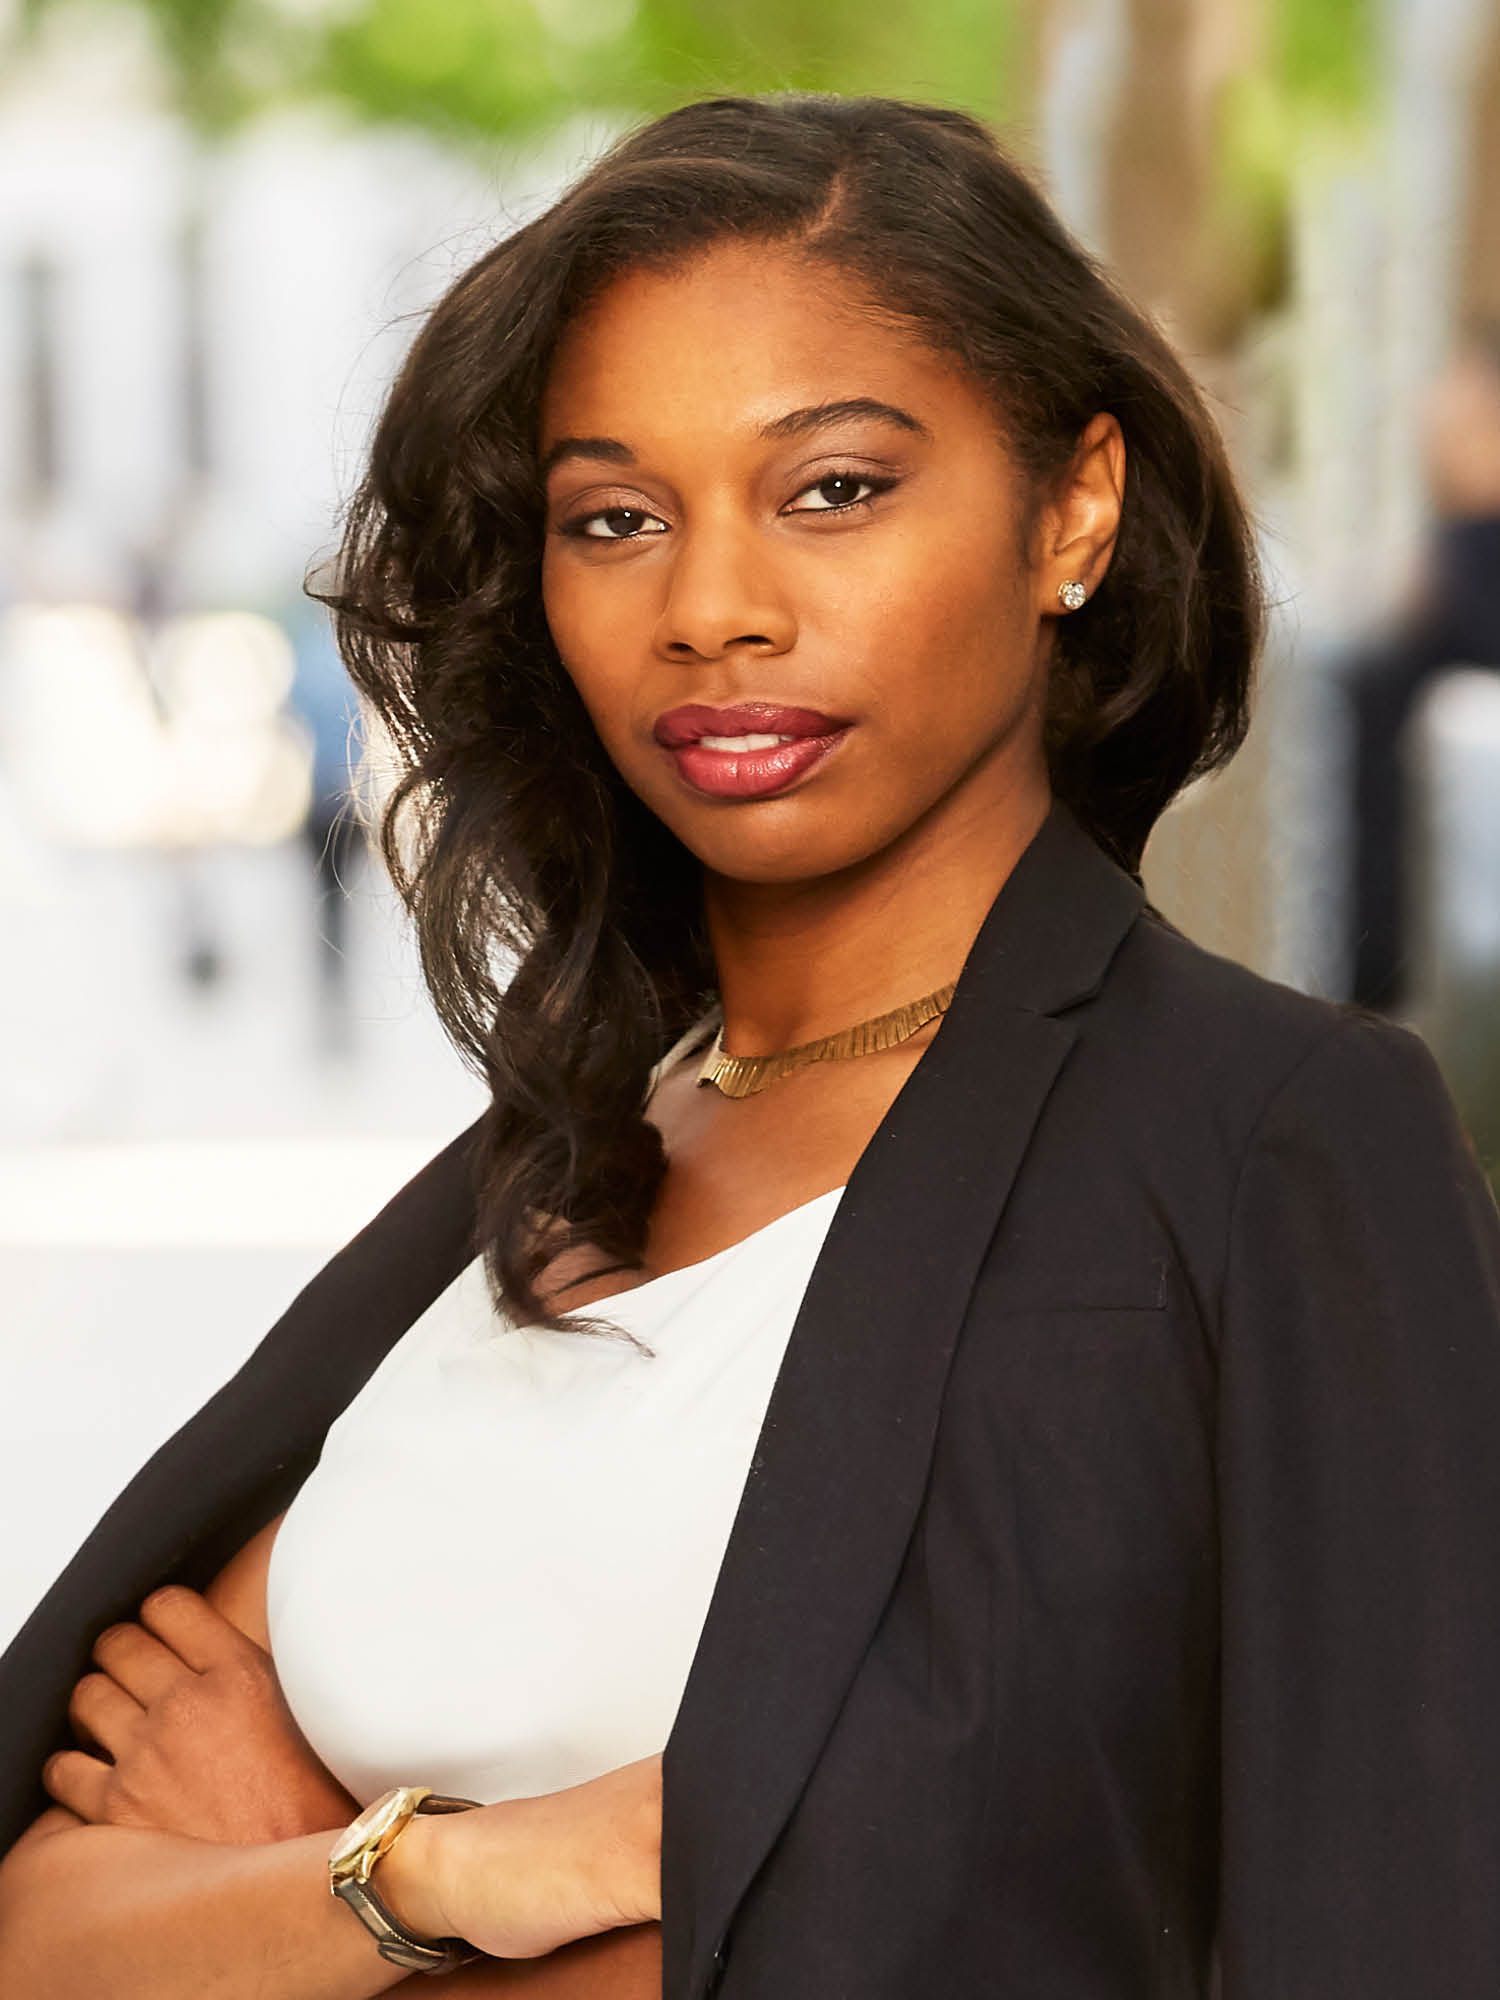 Sable Lynch, a top realtor in New York City for Corcoran, a real estate firm in Brooklyn Heights.